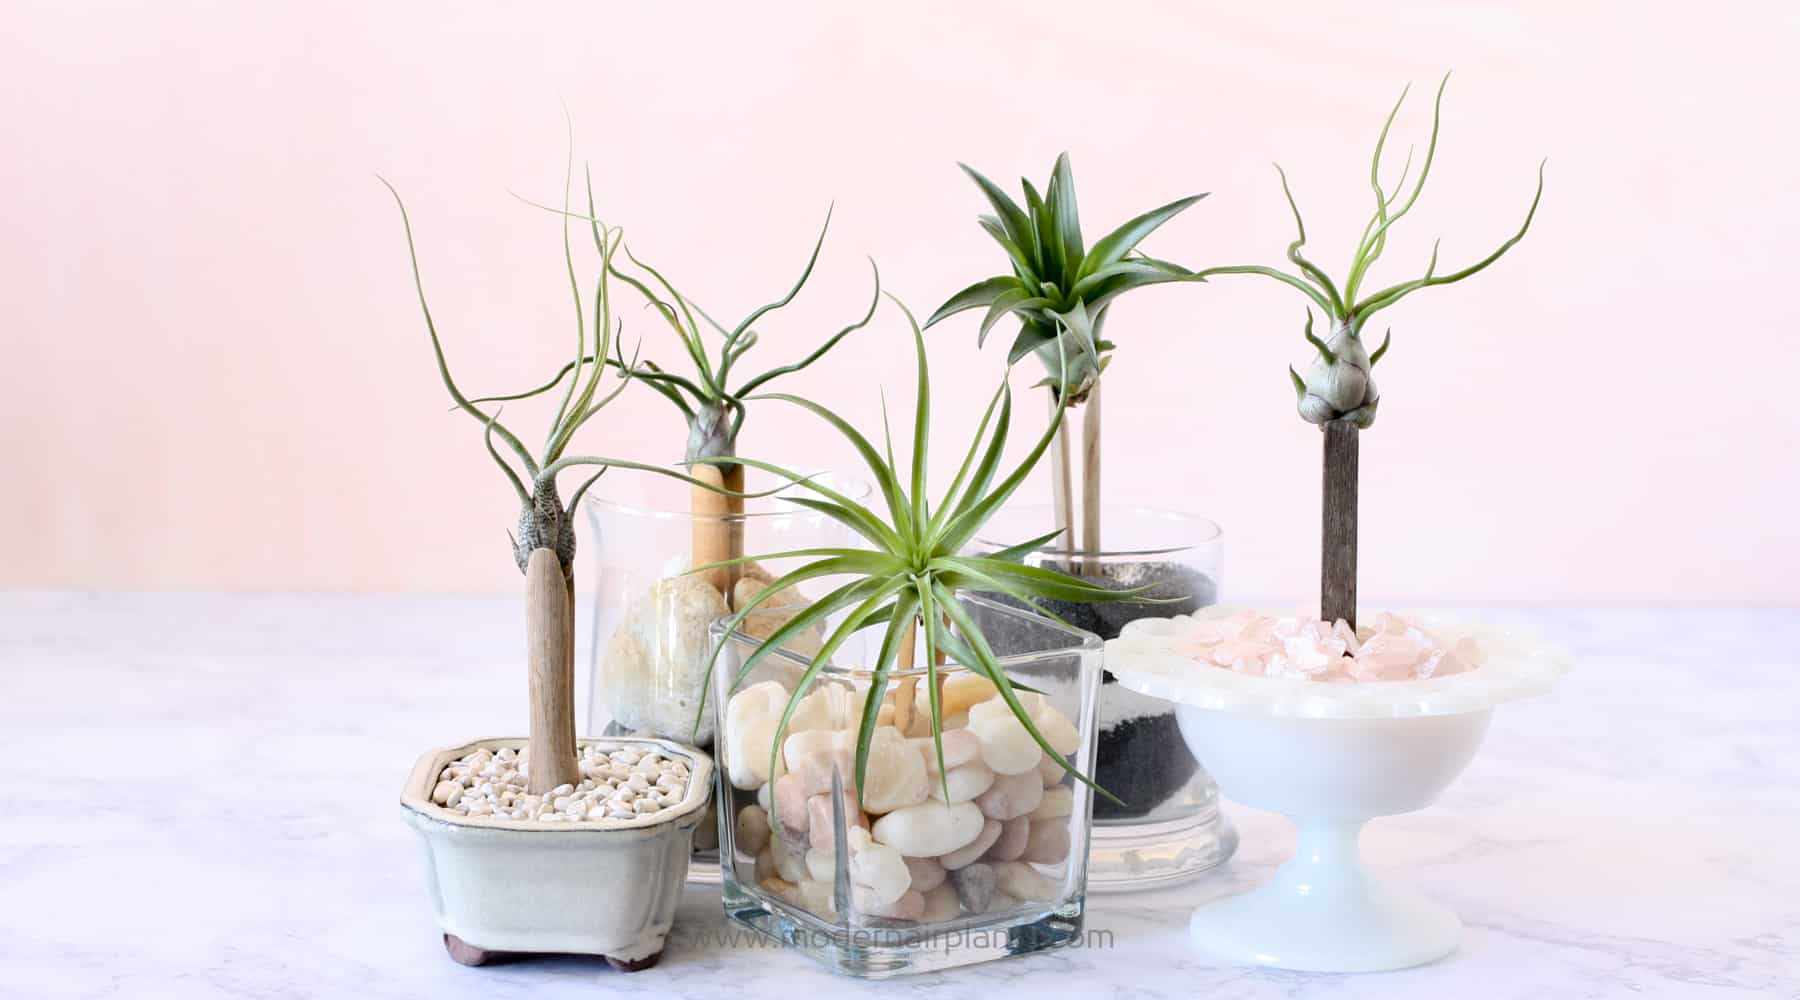 clothespins give air plants a lift